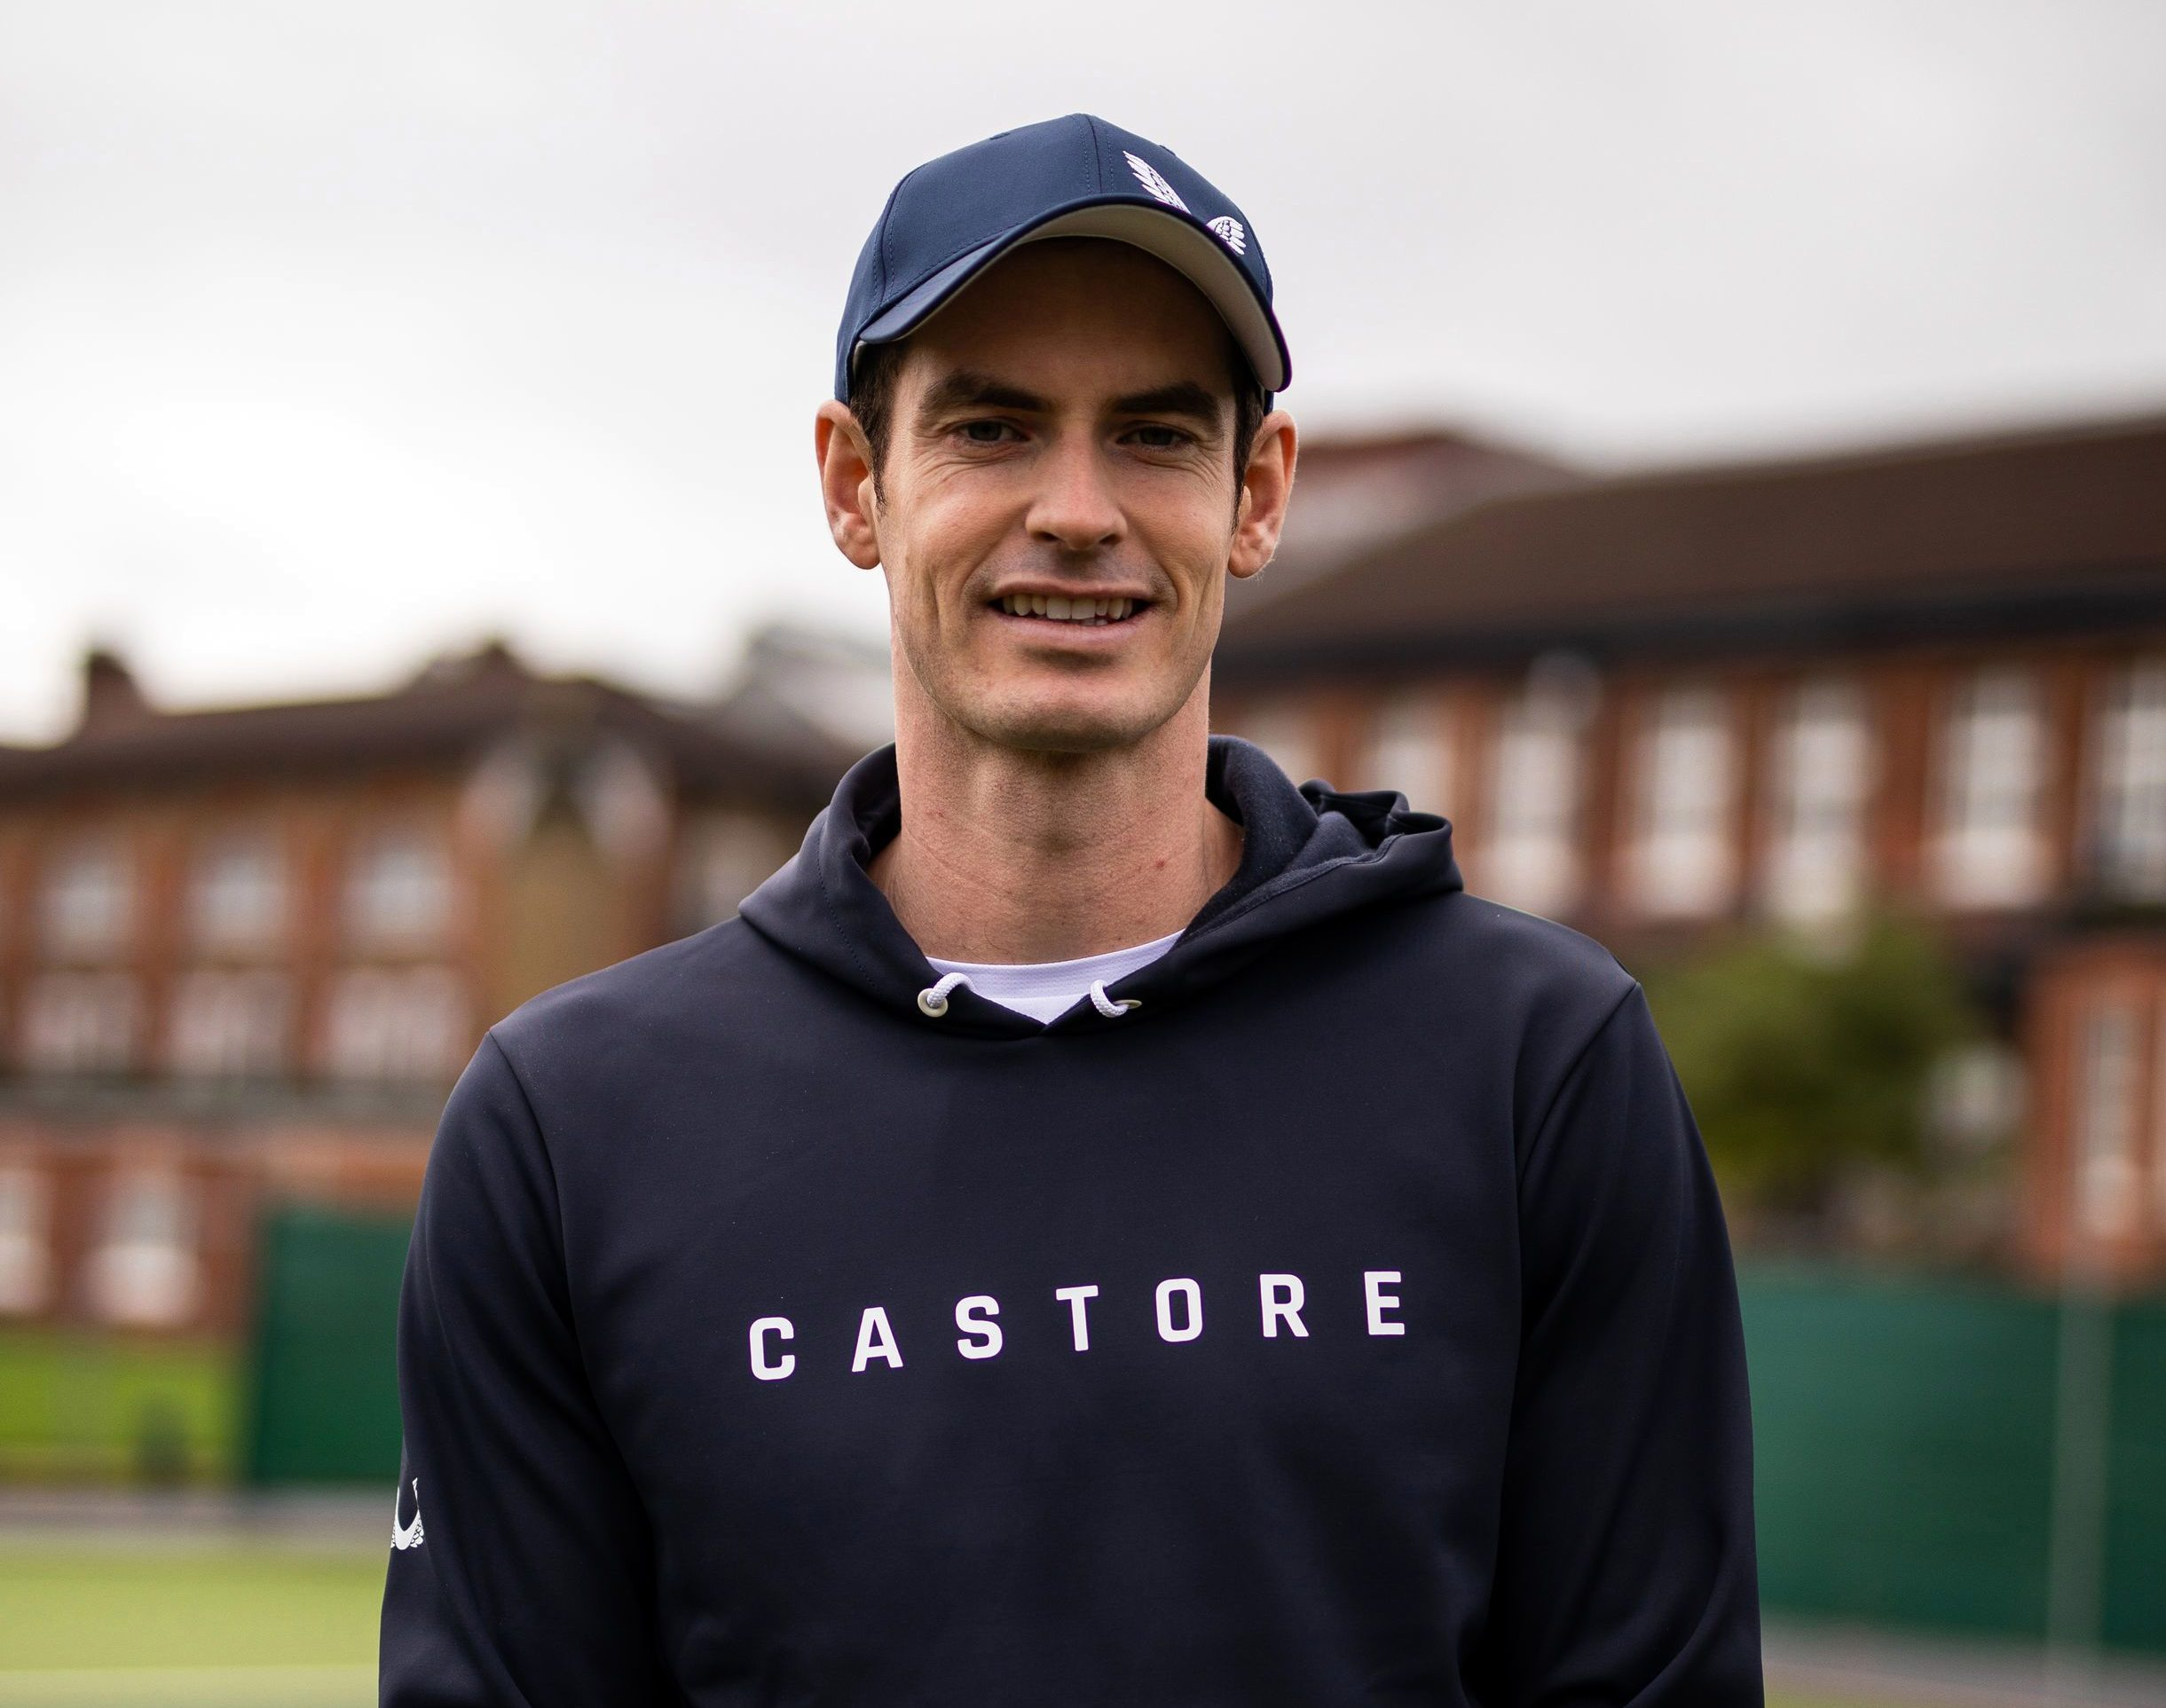 Andy Murray could have the rules bent slightly for him to play at Wimbledon this year